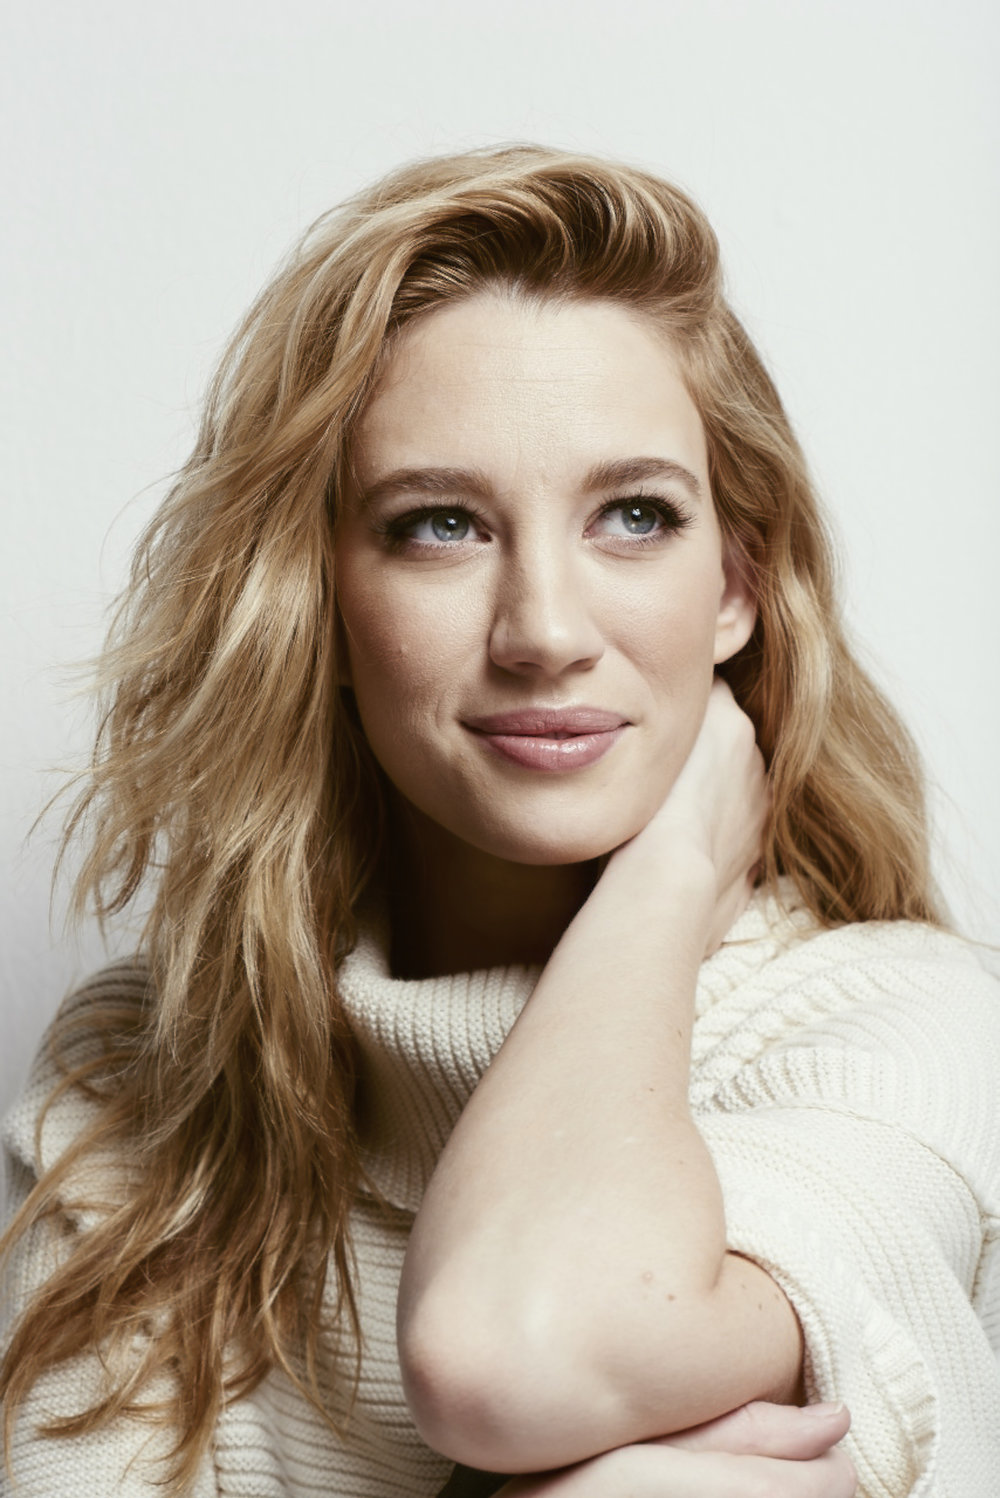 Photos Yael Grobglas naked (27 foto and video), Pussy, Cleavage, Boobs, braless 2020